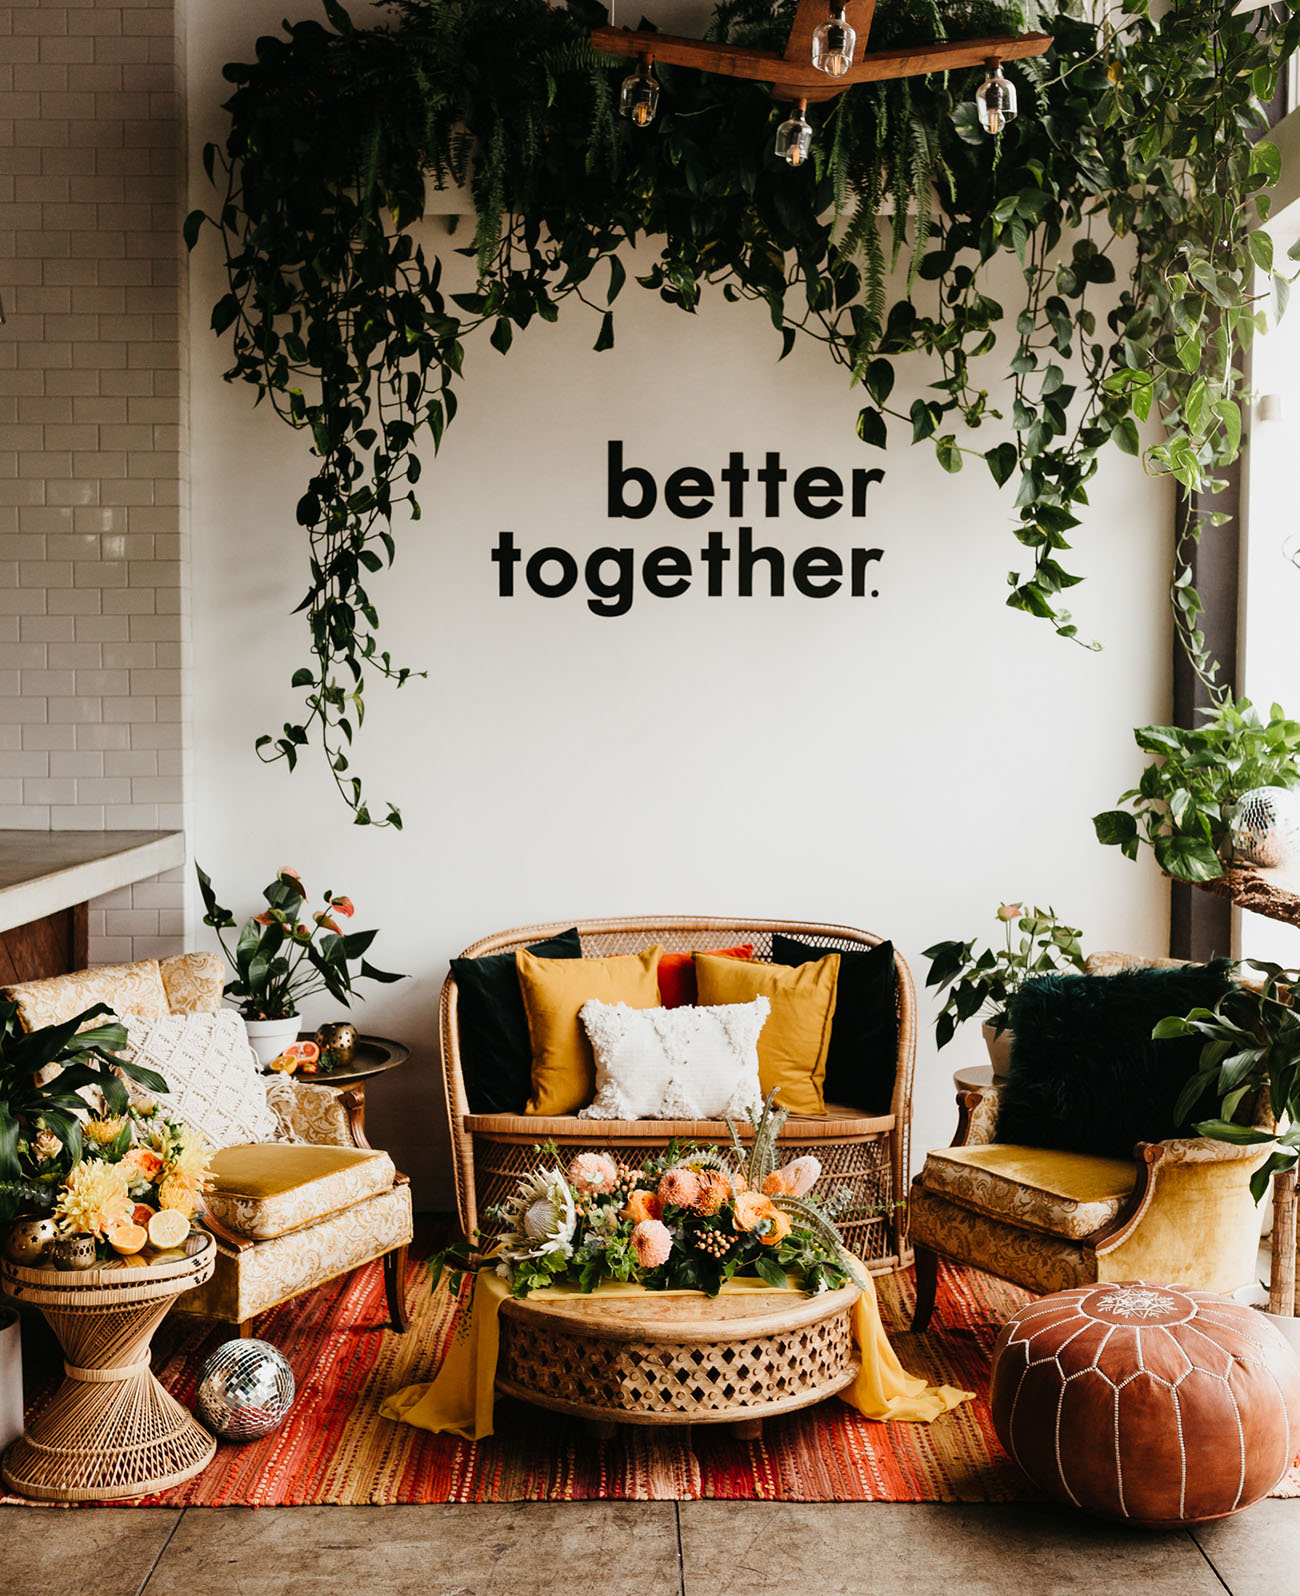 The wedding lounge was a vintage boho one, with bright pillows and rugs